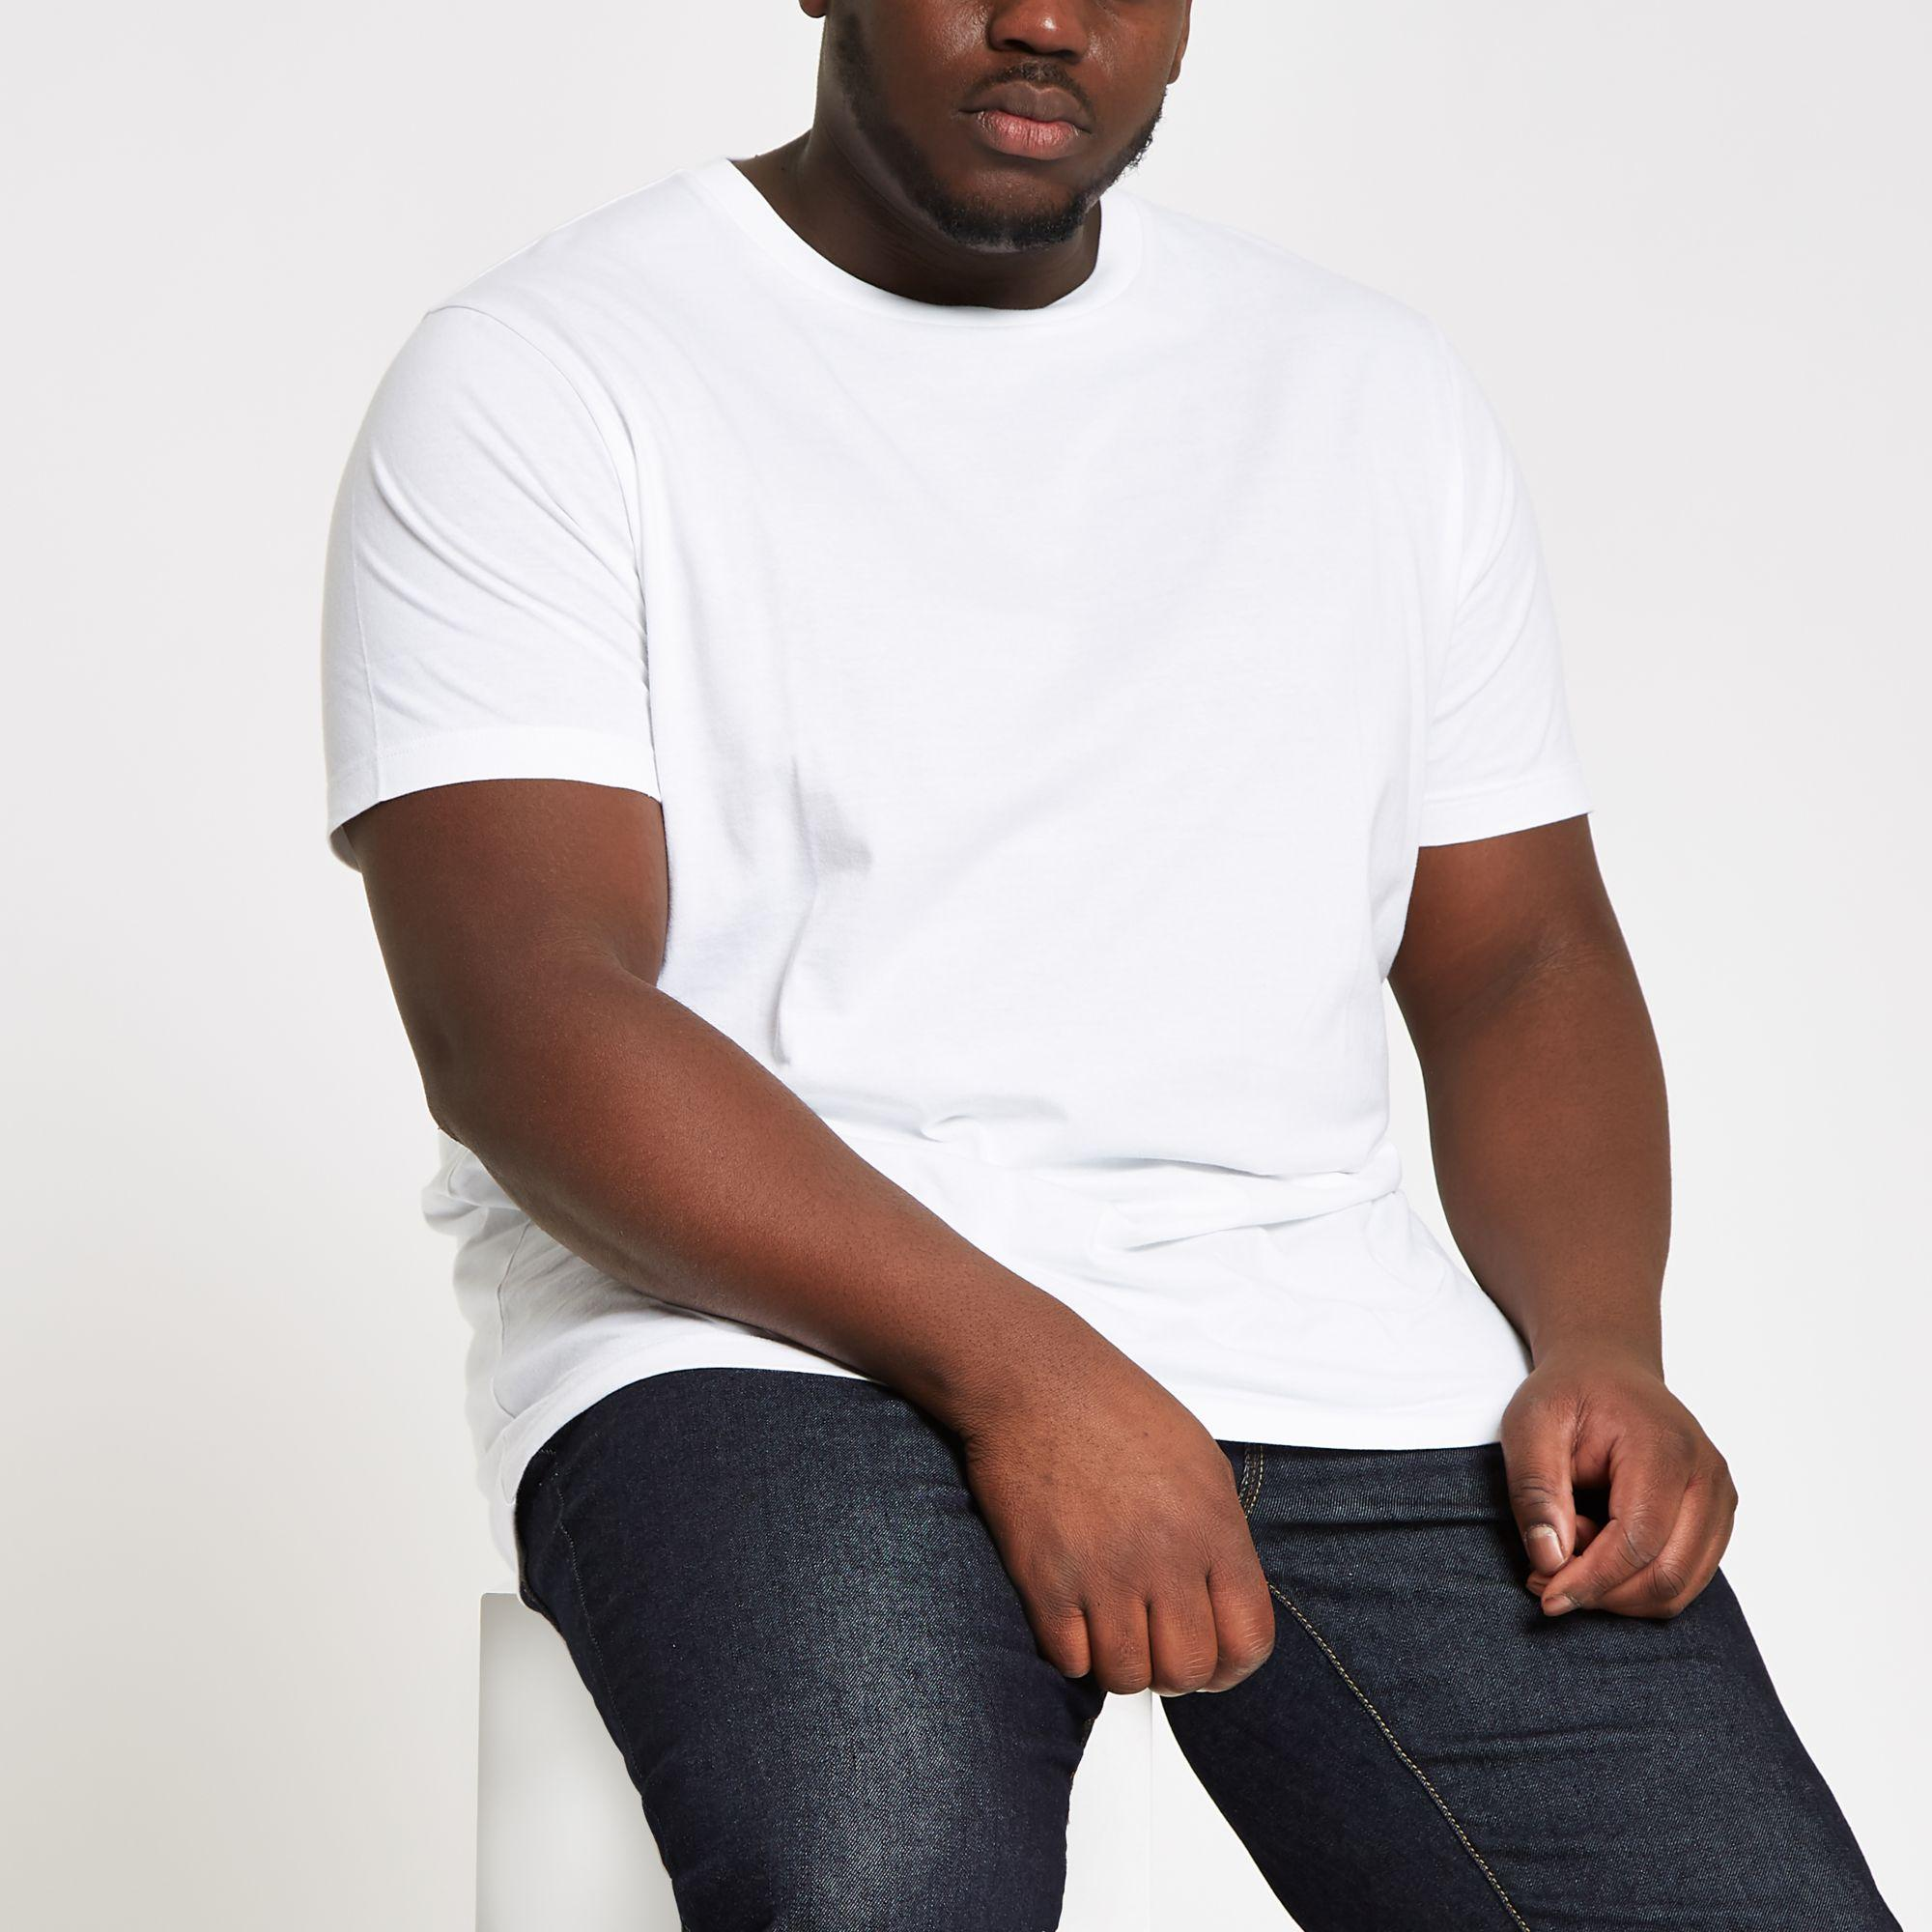 b0bfae82 River Island Big And Tall Slim Fit Crew Neck T-shirt in White for ...